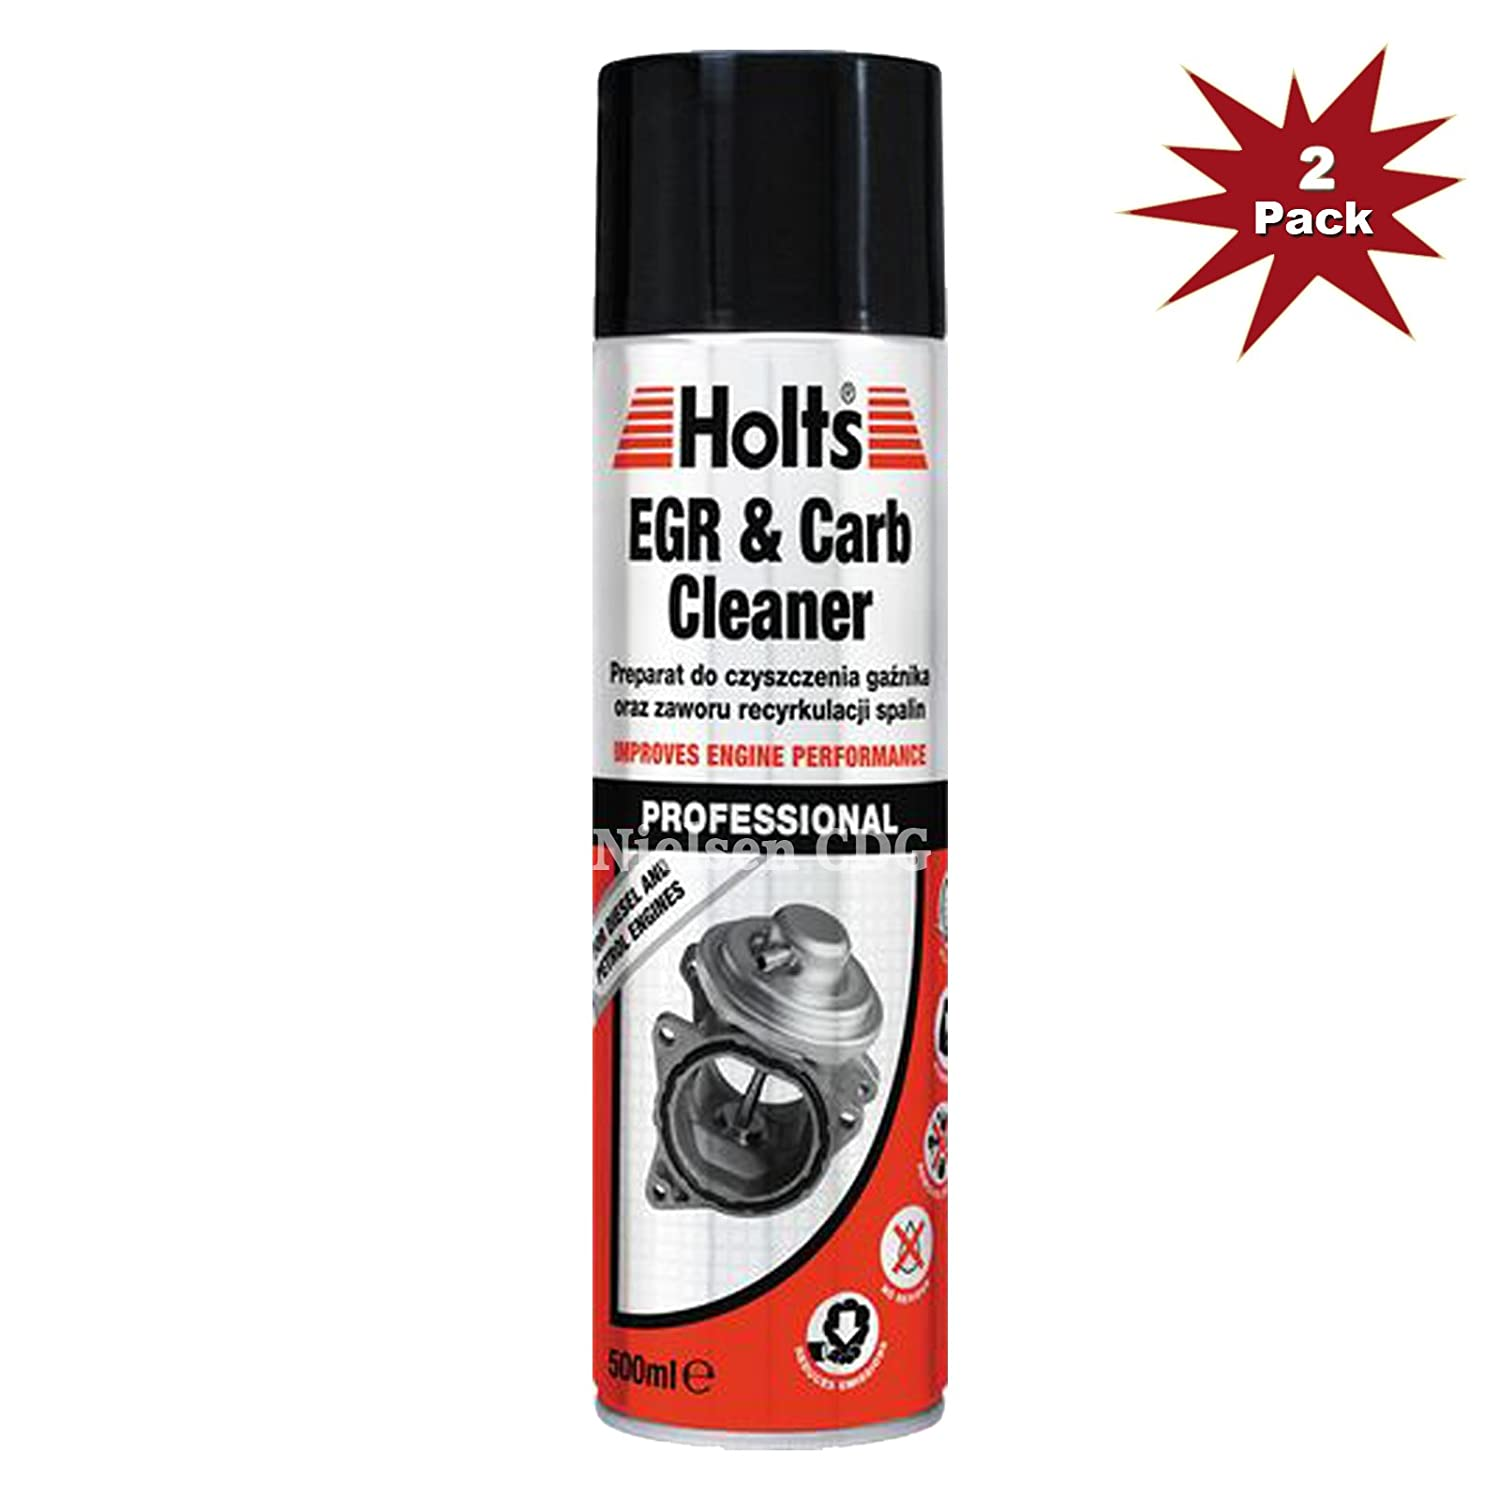 Holts EGR & Carb Cleaner 500ml 2pk Holt LLoyd